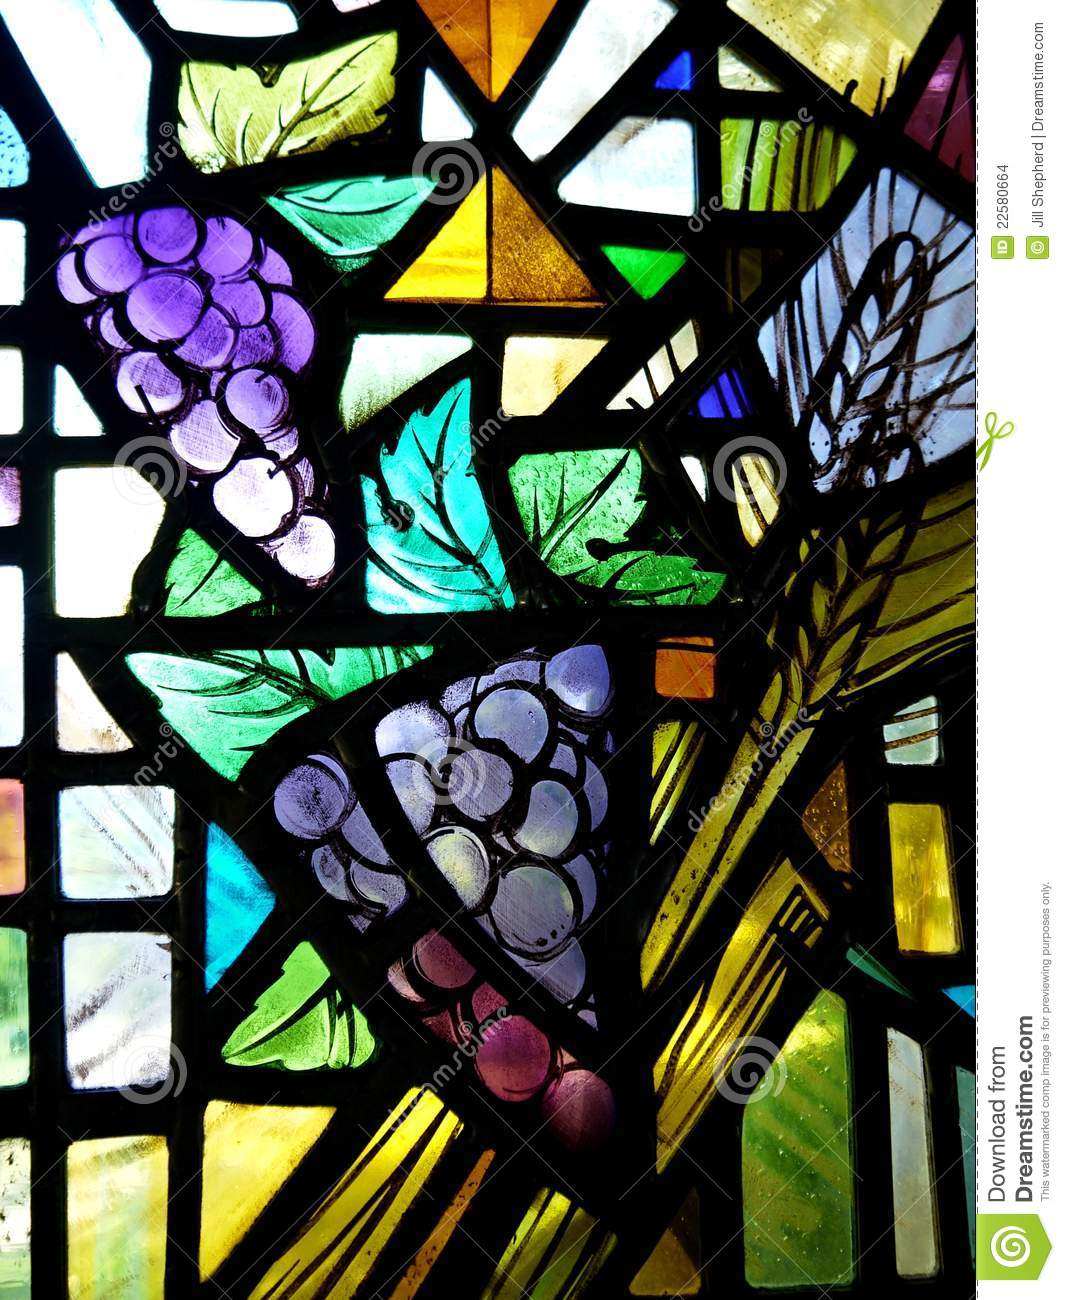 Church Stained Glass Window With Grapes Stock Photo